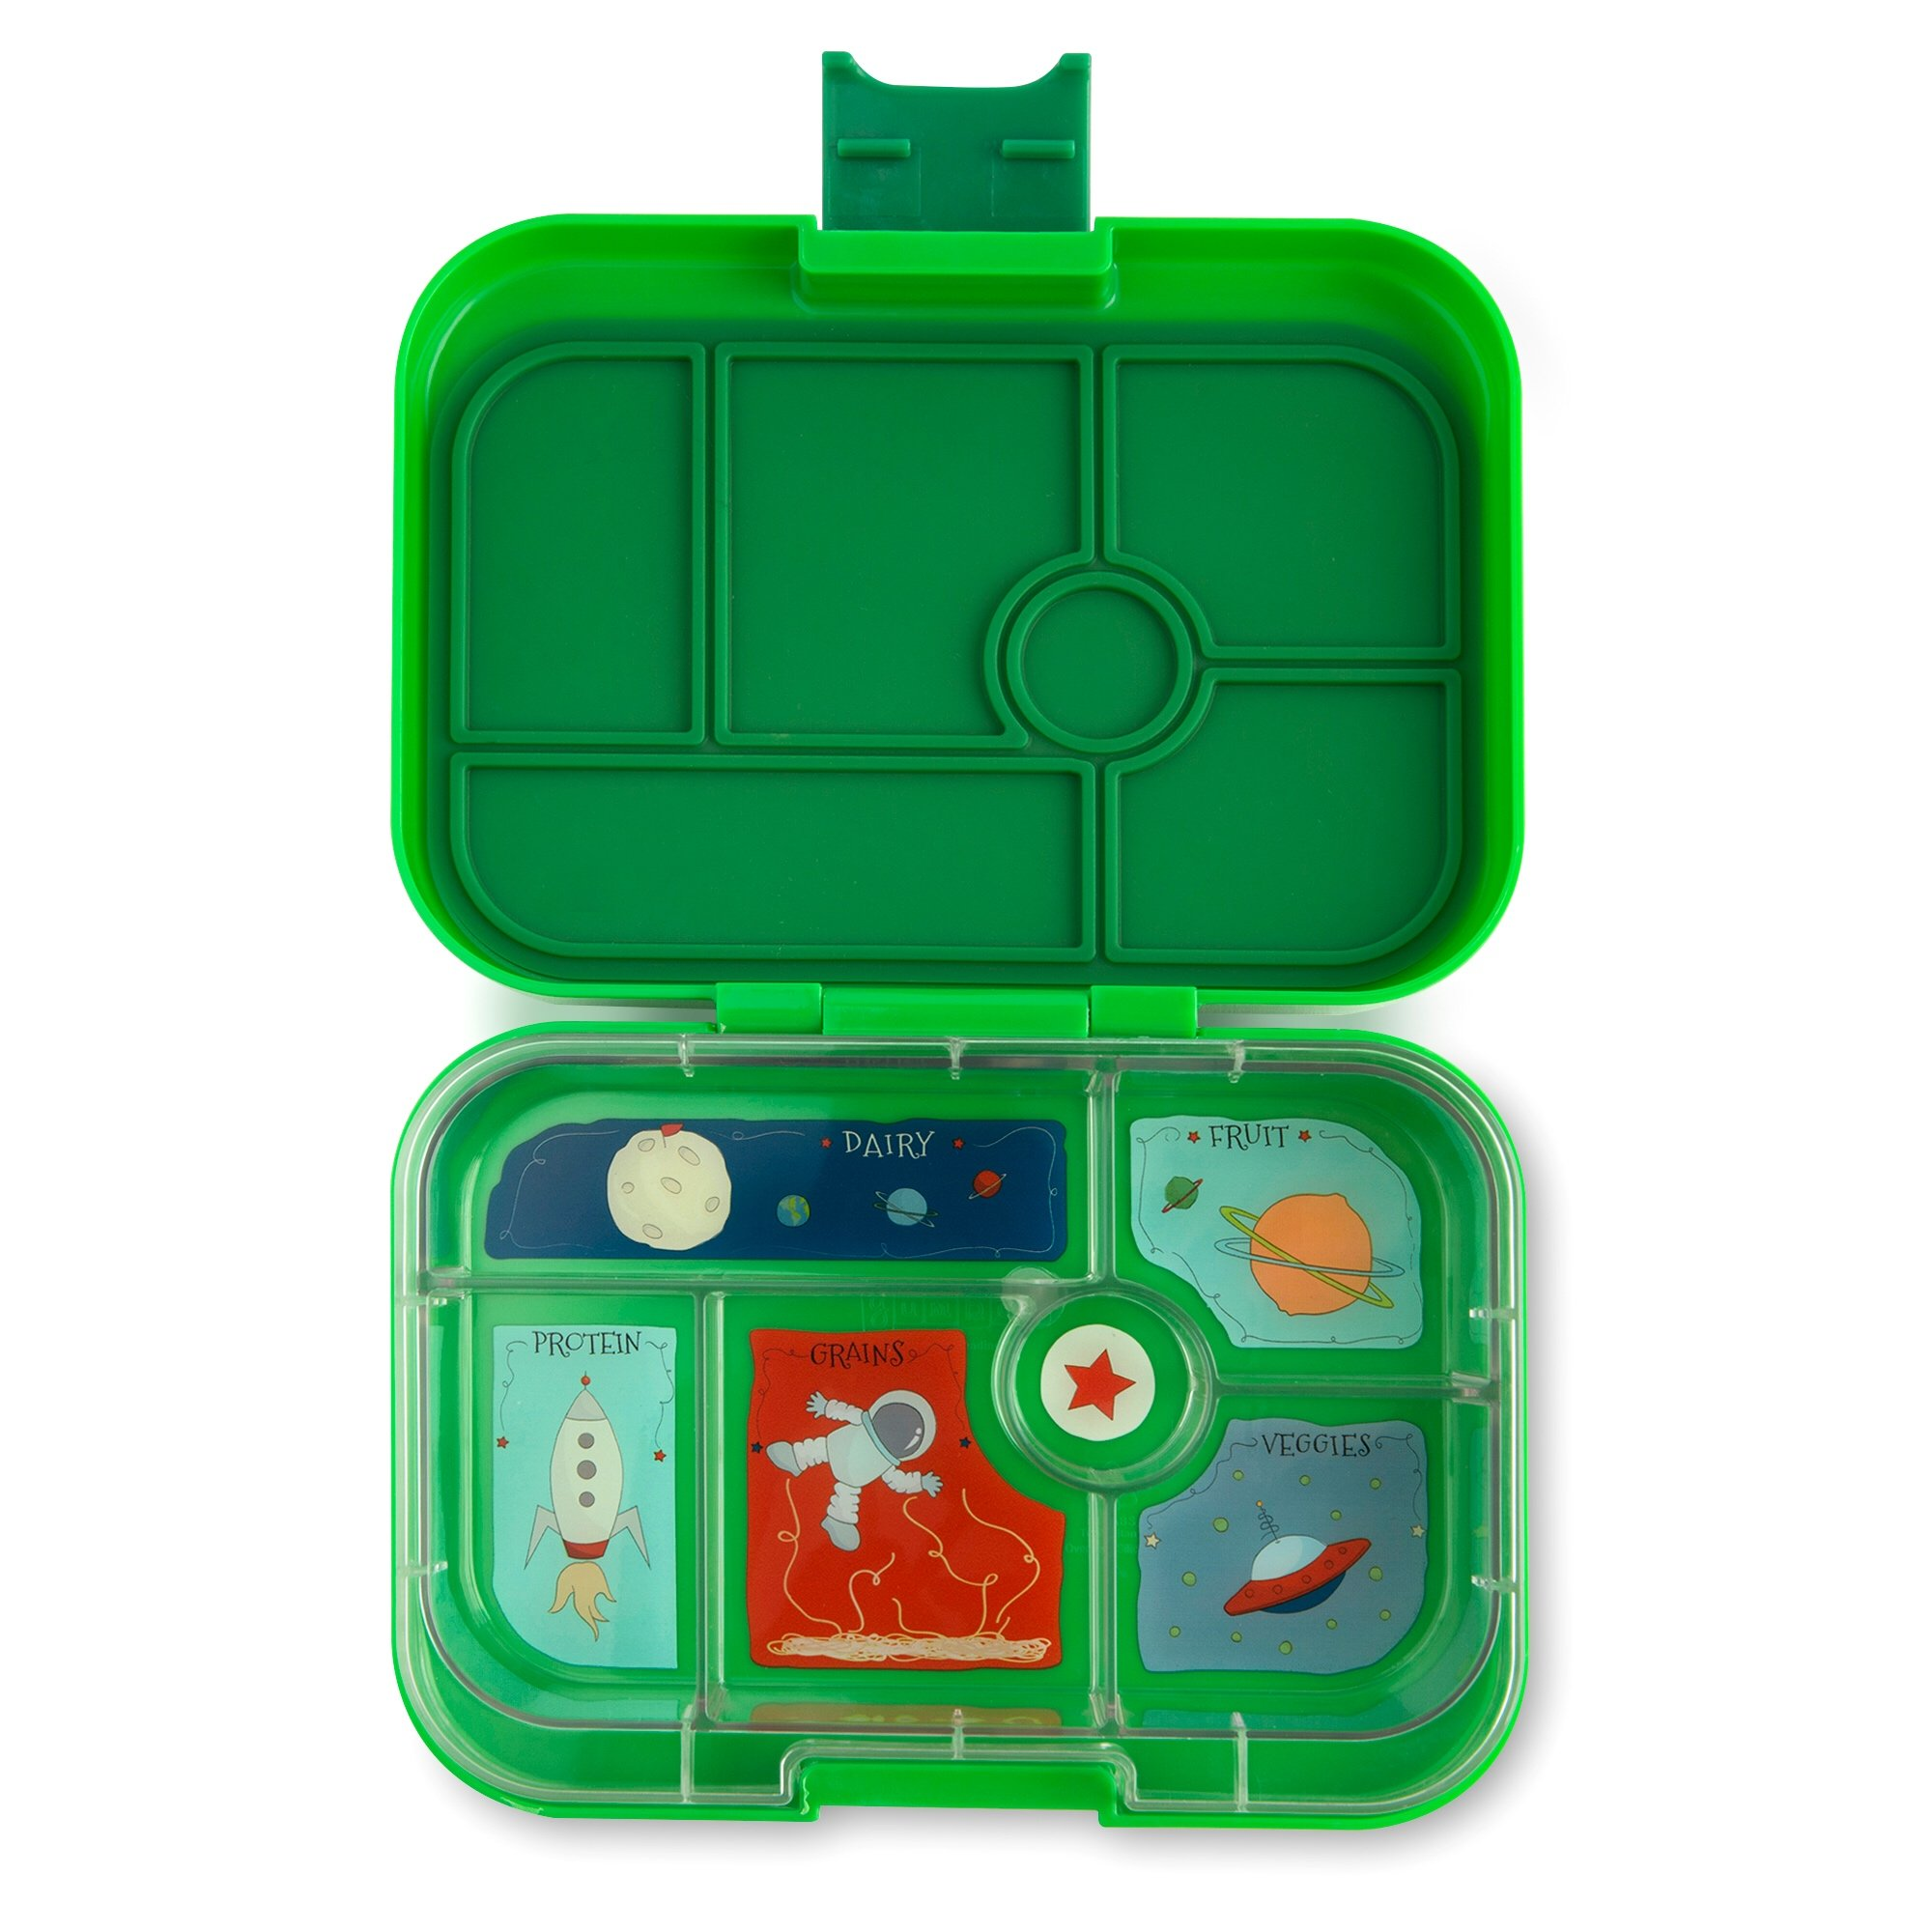 Yumbox Bento Lunch Box Original for Kids (Terra Green) by Yumbox